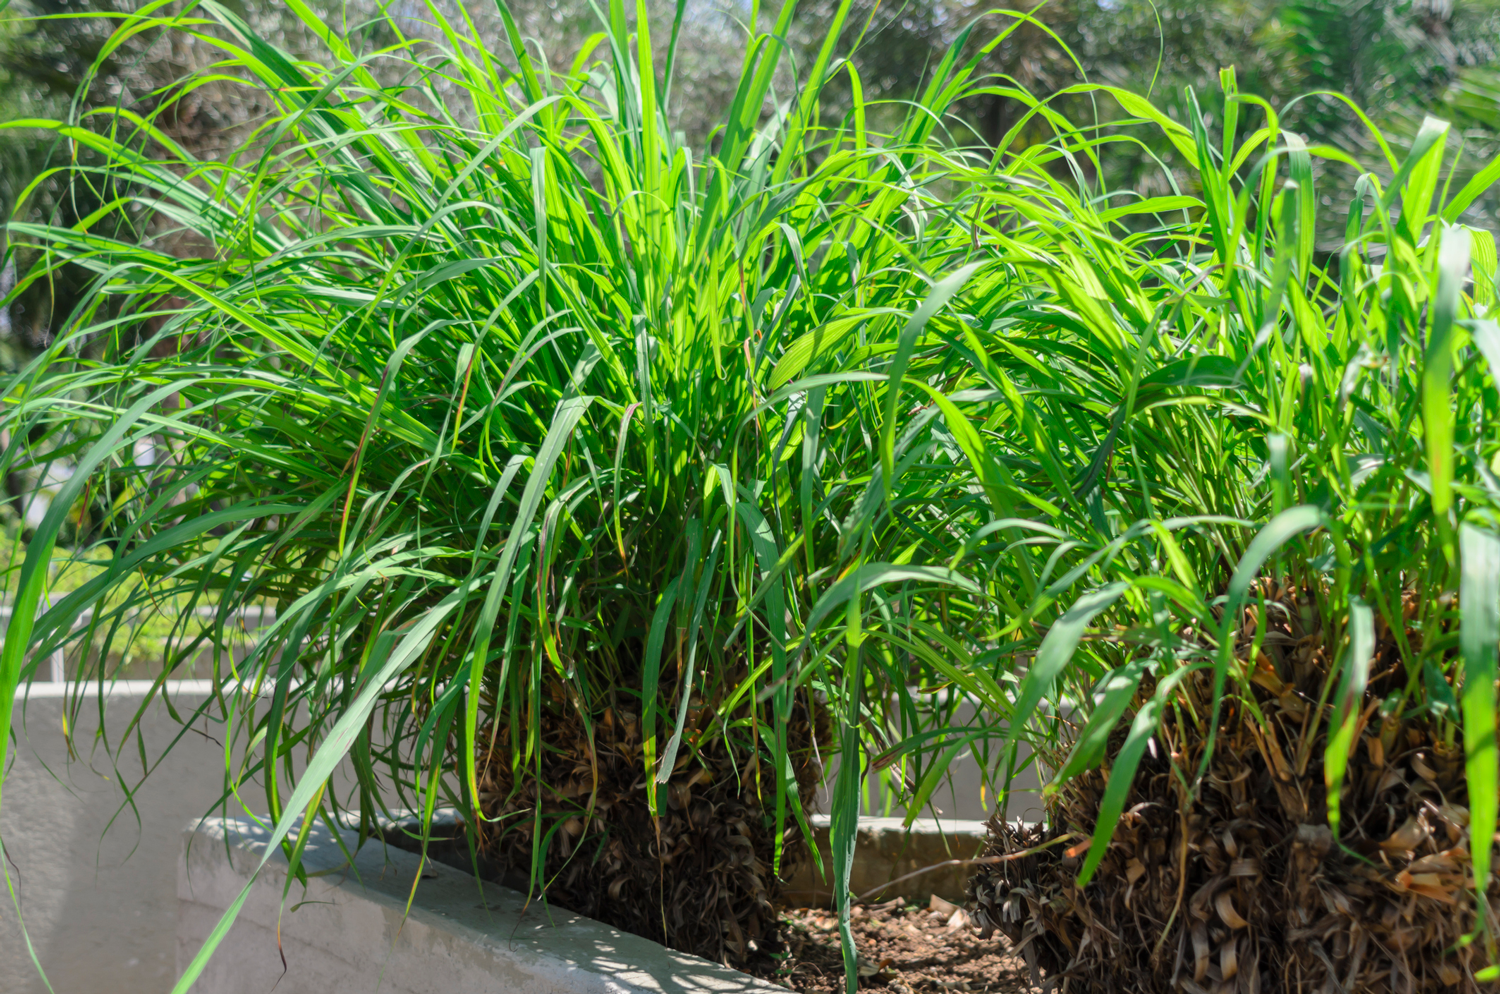 Citronella Plants For Mosquitoes Do They Work As A Repellent